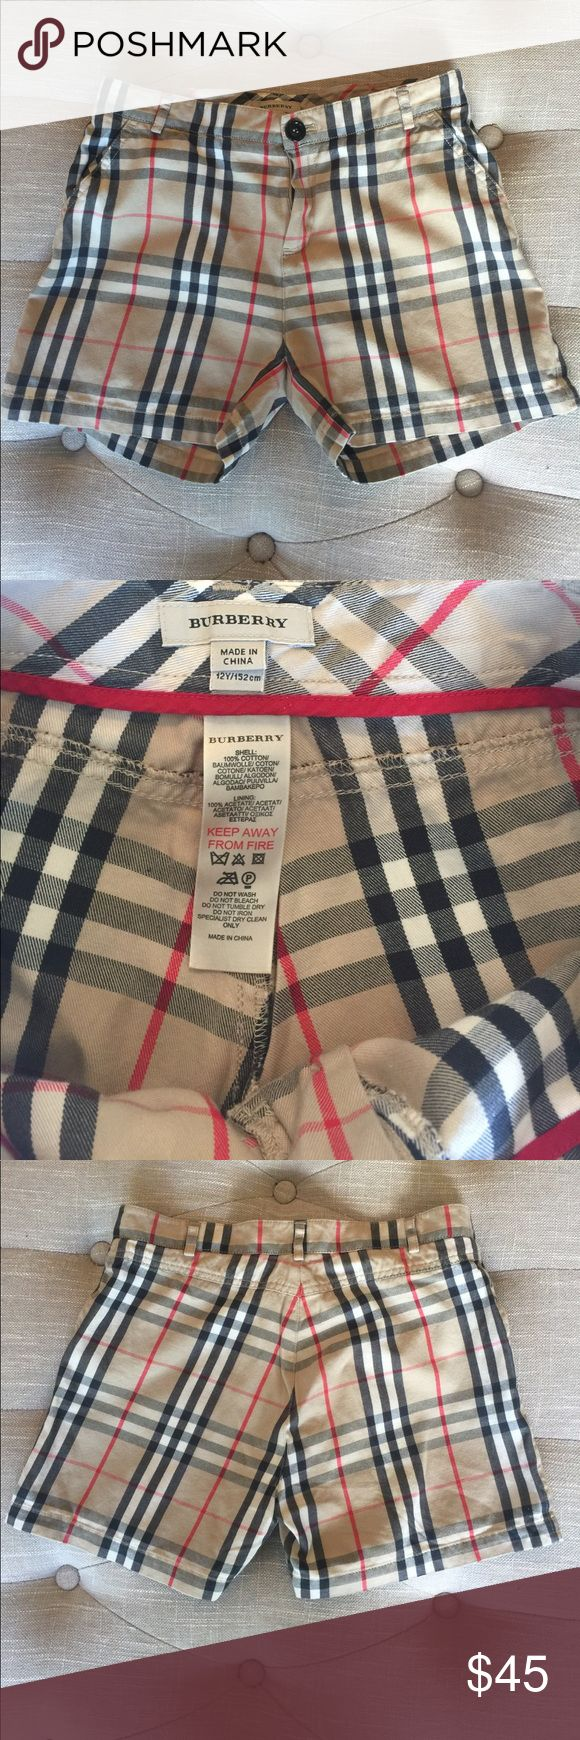 Burberry girls shorts. Authentic girls Burberry shorts with side pockets and no back pockets. Good condition. Burberry Shorts Skorts